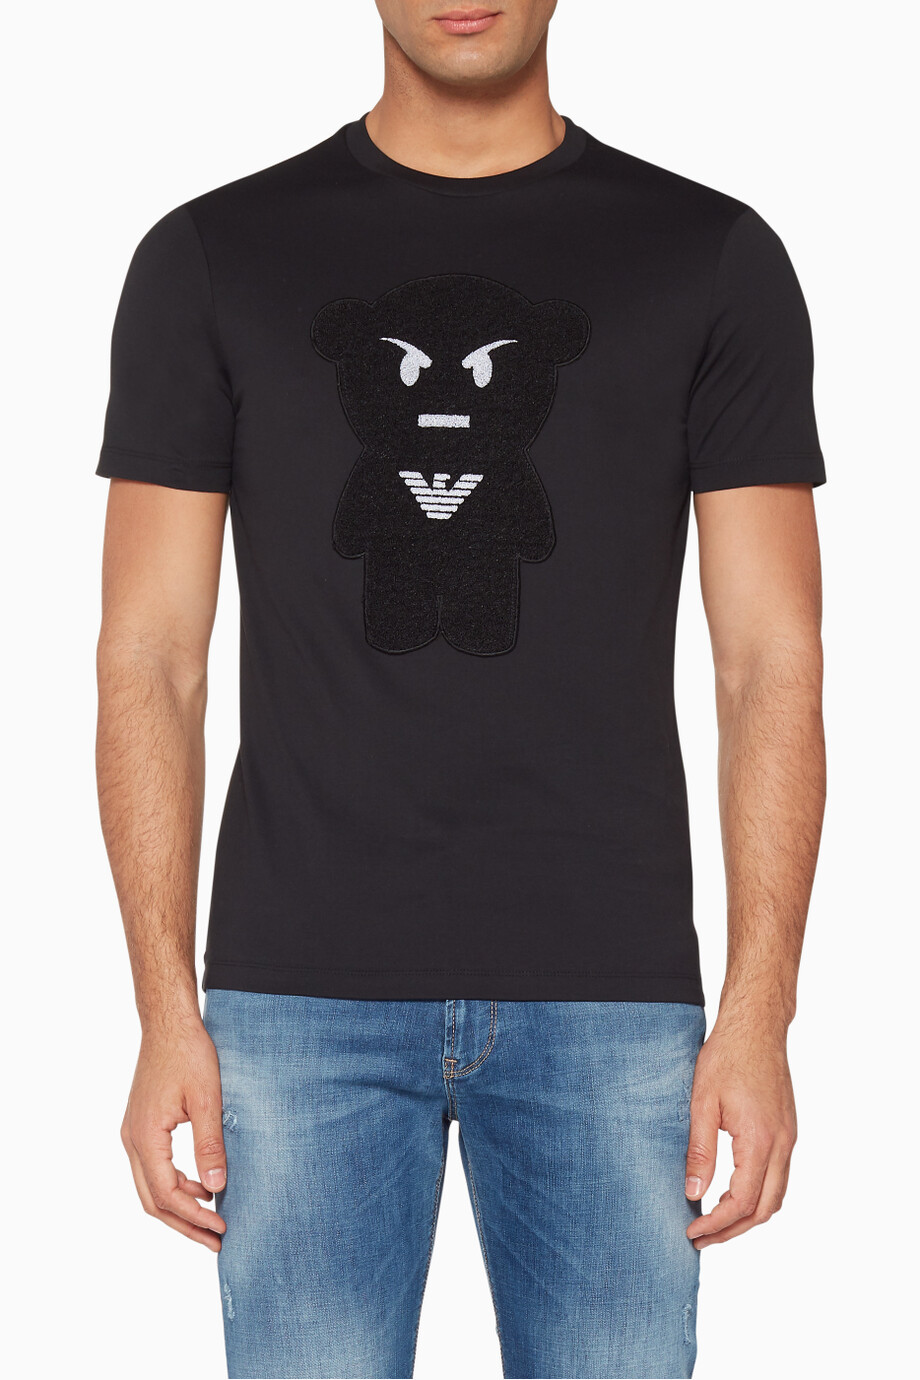 abffc5daf2 Shop Emporio Armani Black Black Manga Bear T-Shirt for Men | Ounass ...